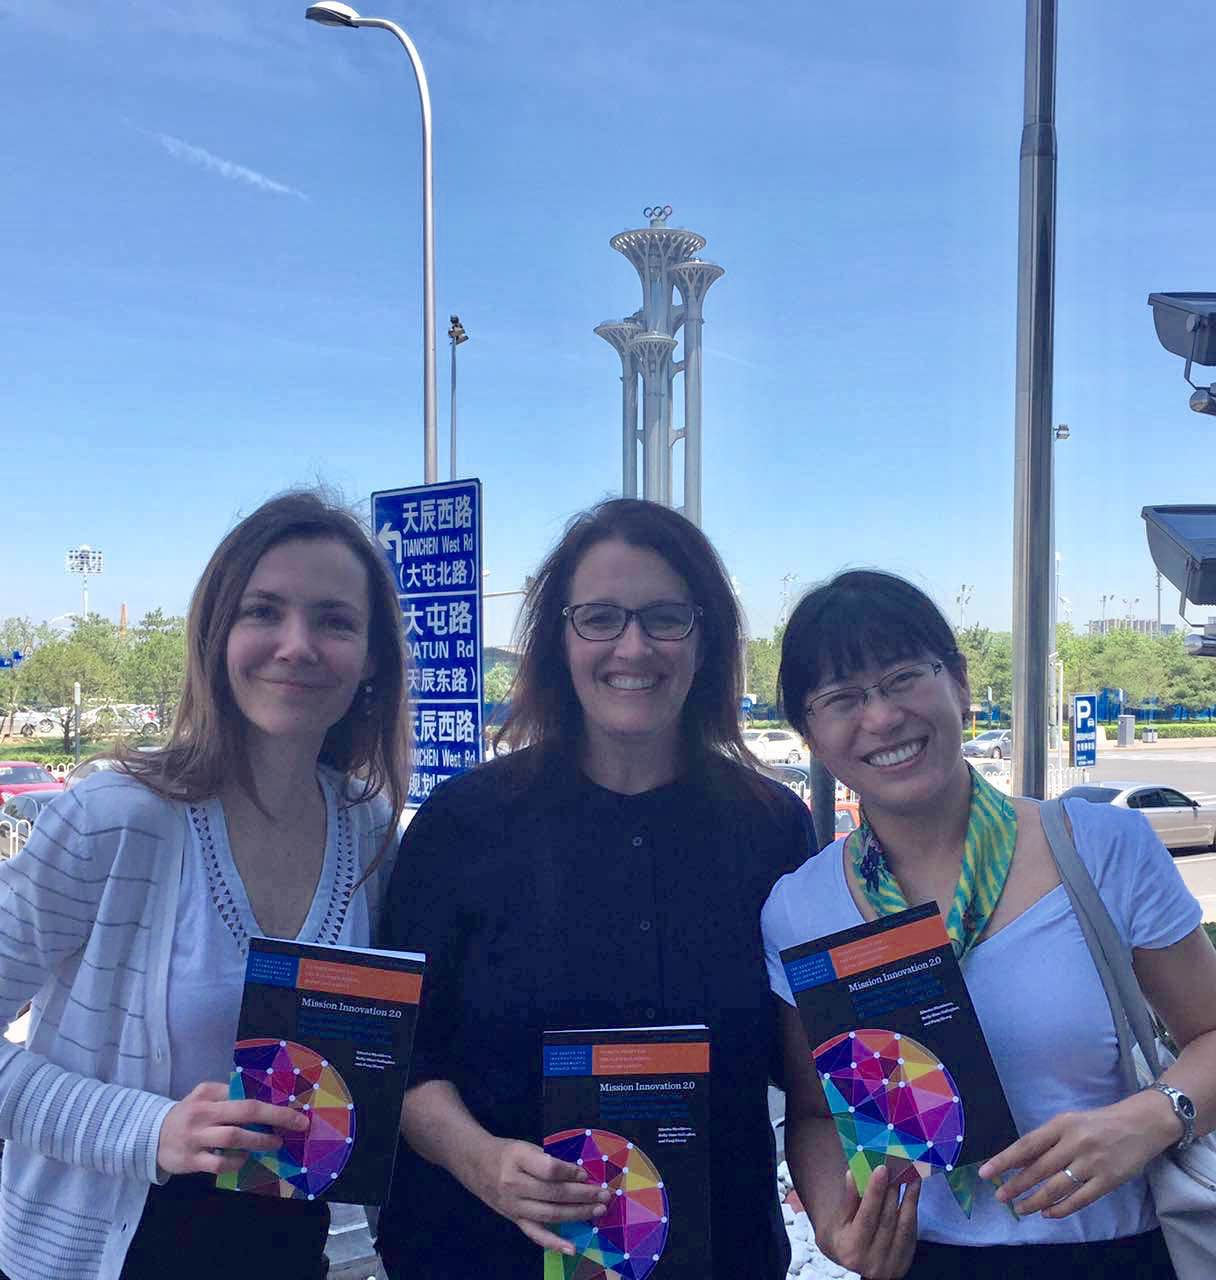 Zdenka Myslikova, Kelly Sims Gallagher, and Fang Zhang at the Olympic Village in Beijing where the Mission Innovation and Clean Energy Ministerial meetings were held in June 2017